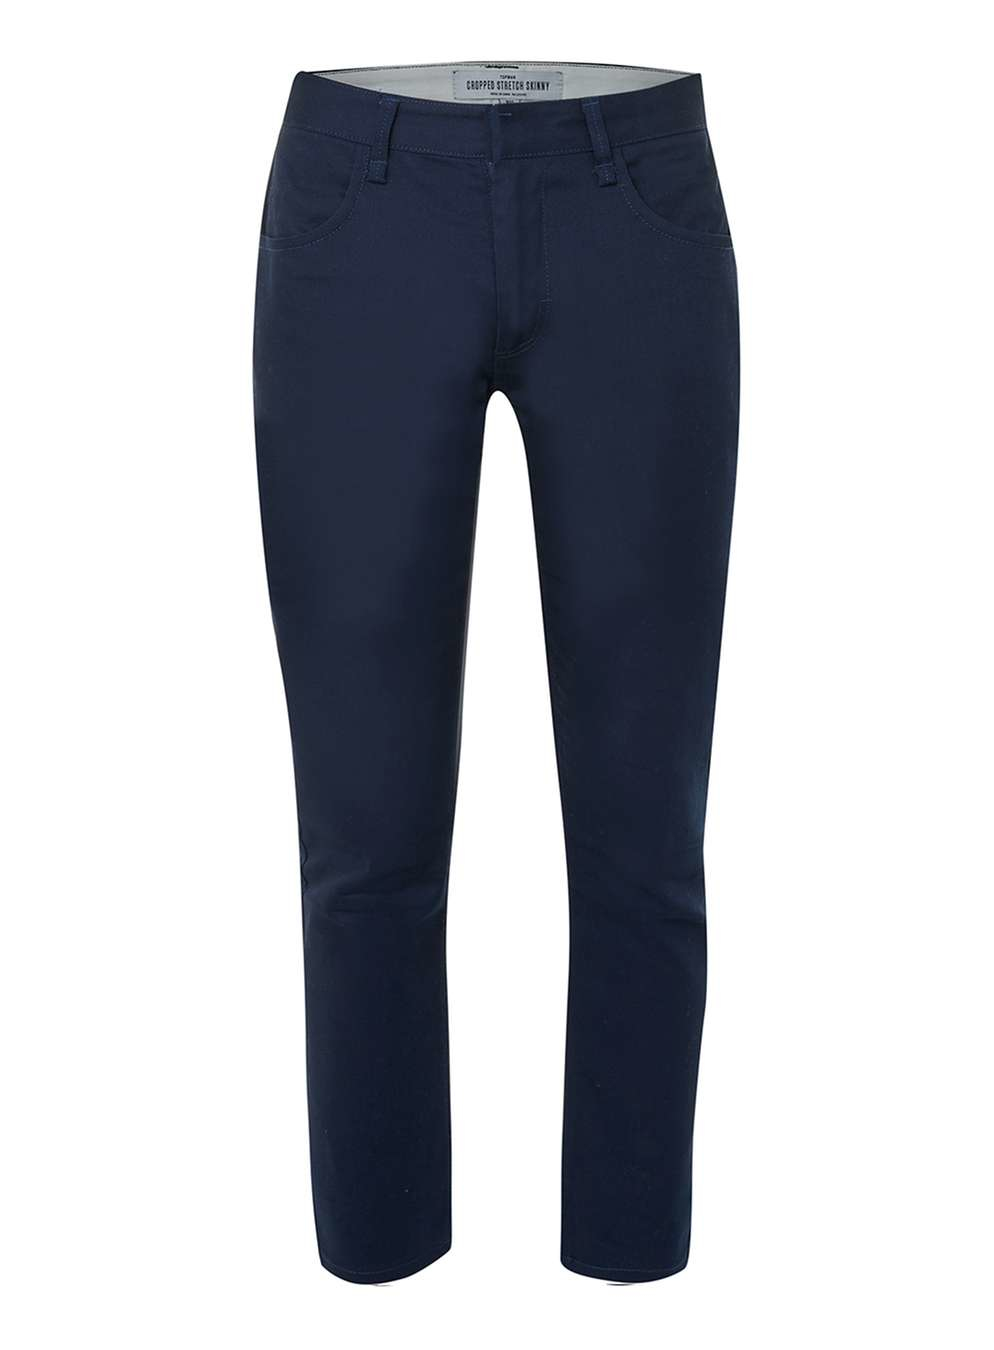 Find great deals on eBay for navy blue skinny pants. Shop with confidence.